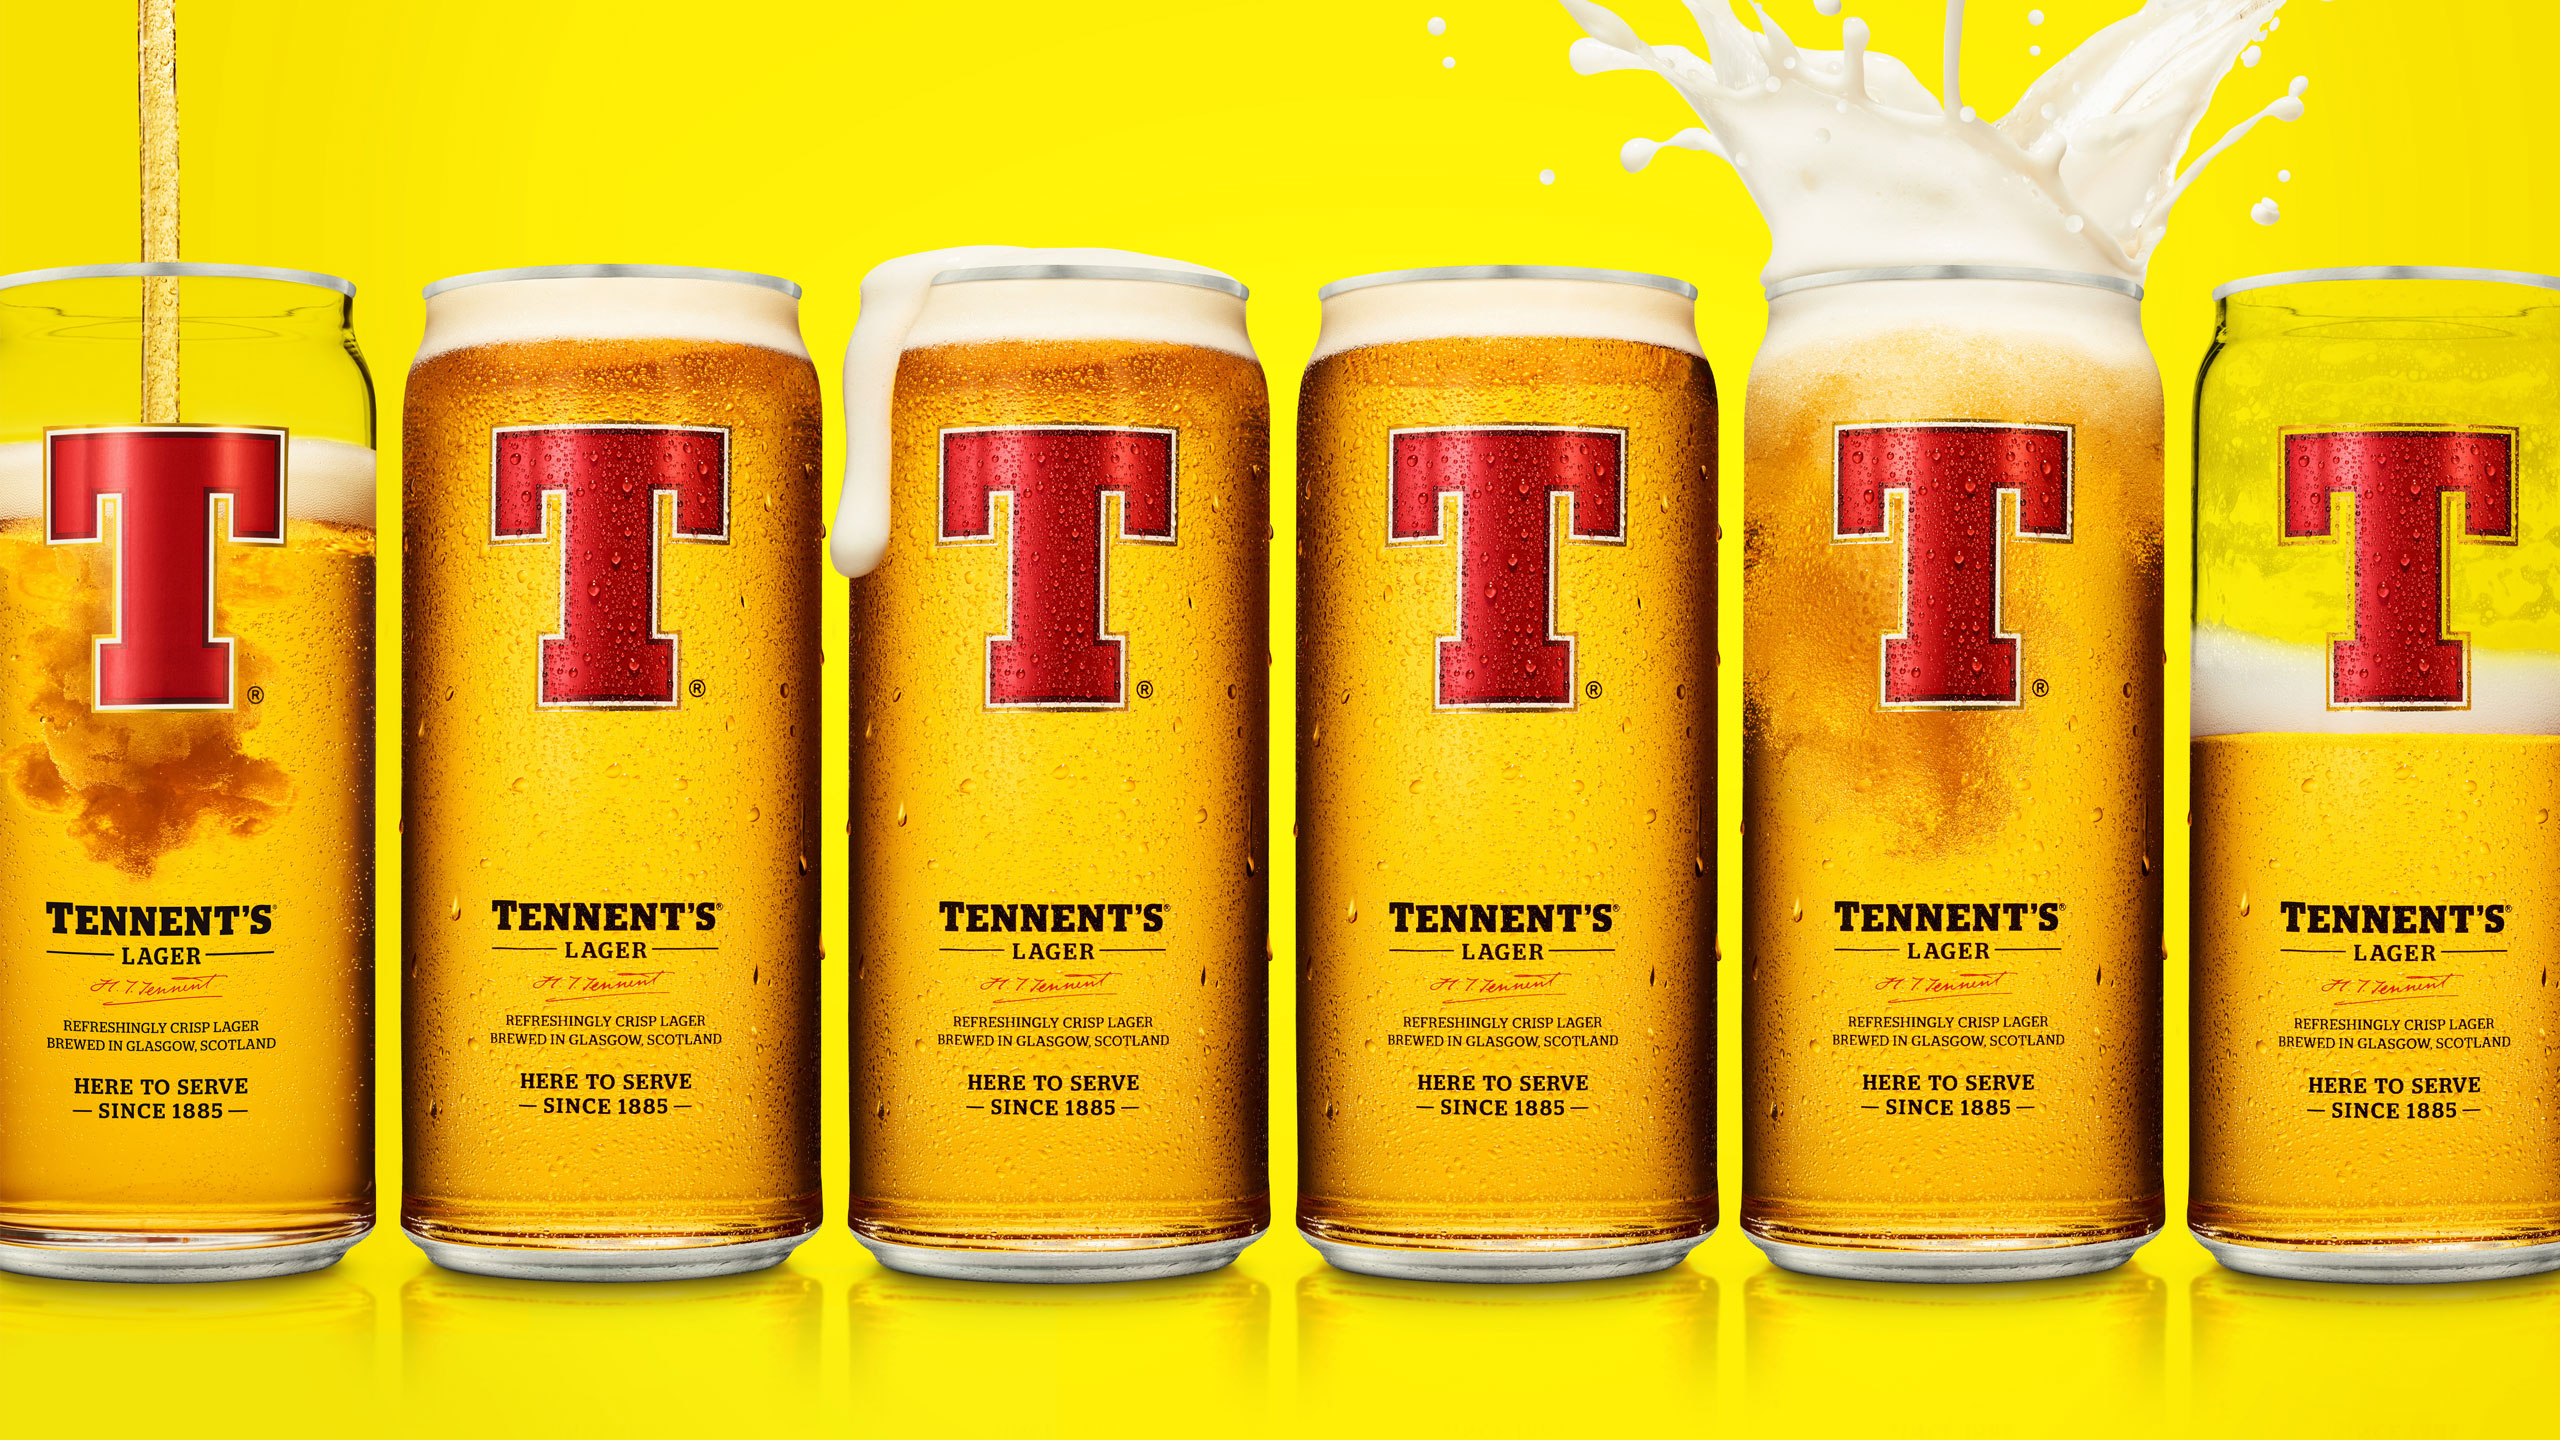 Tennents-Full-Screen-2560x1440